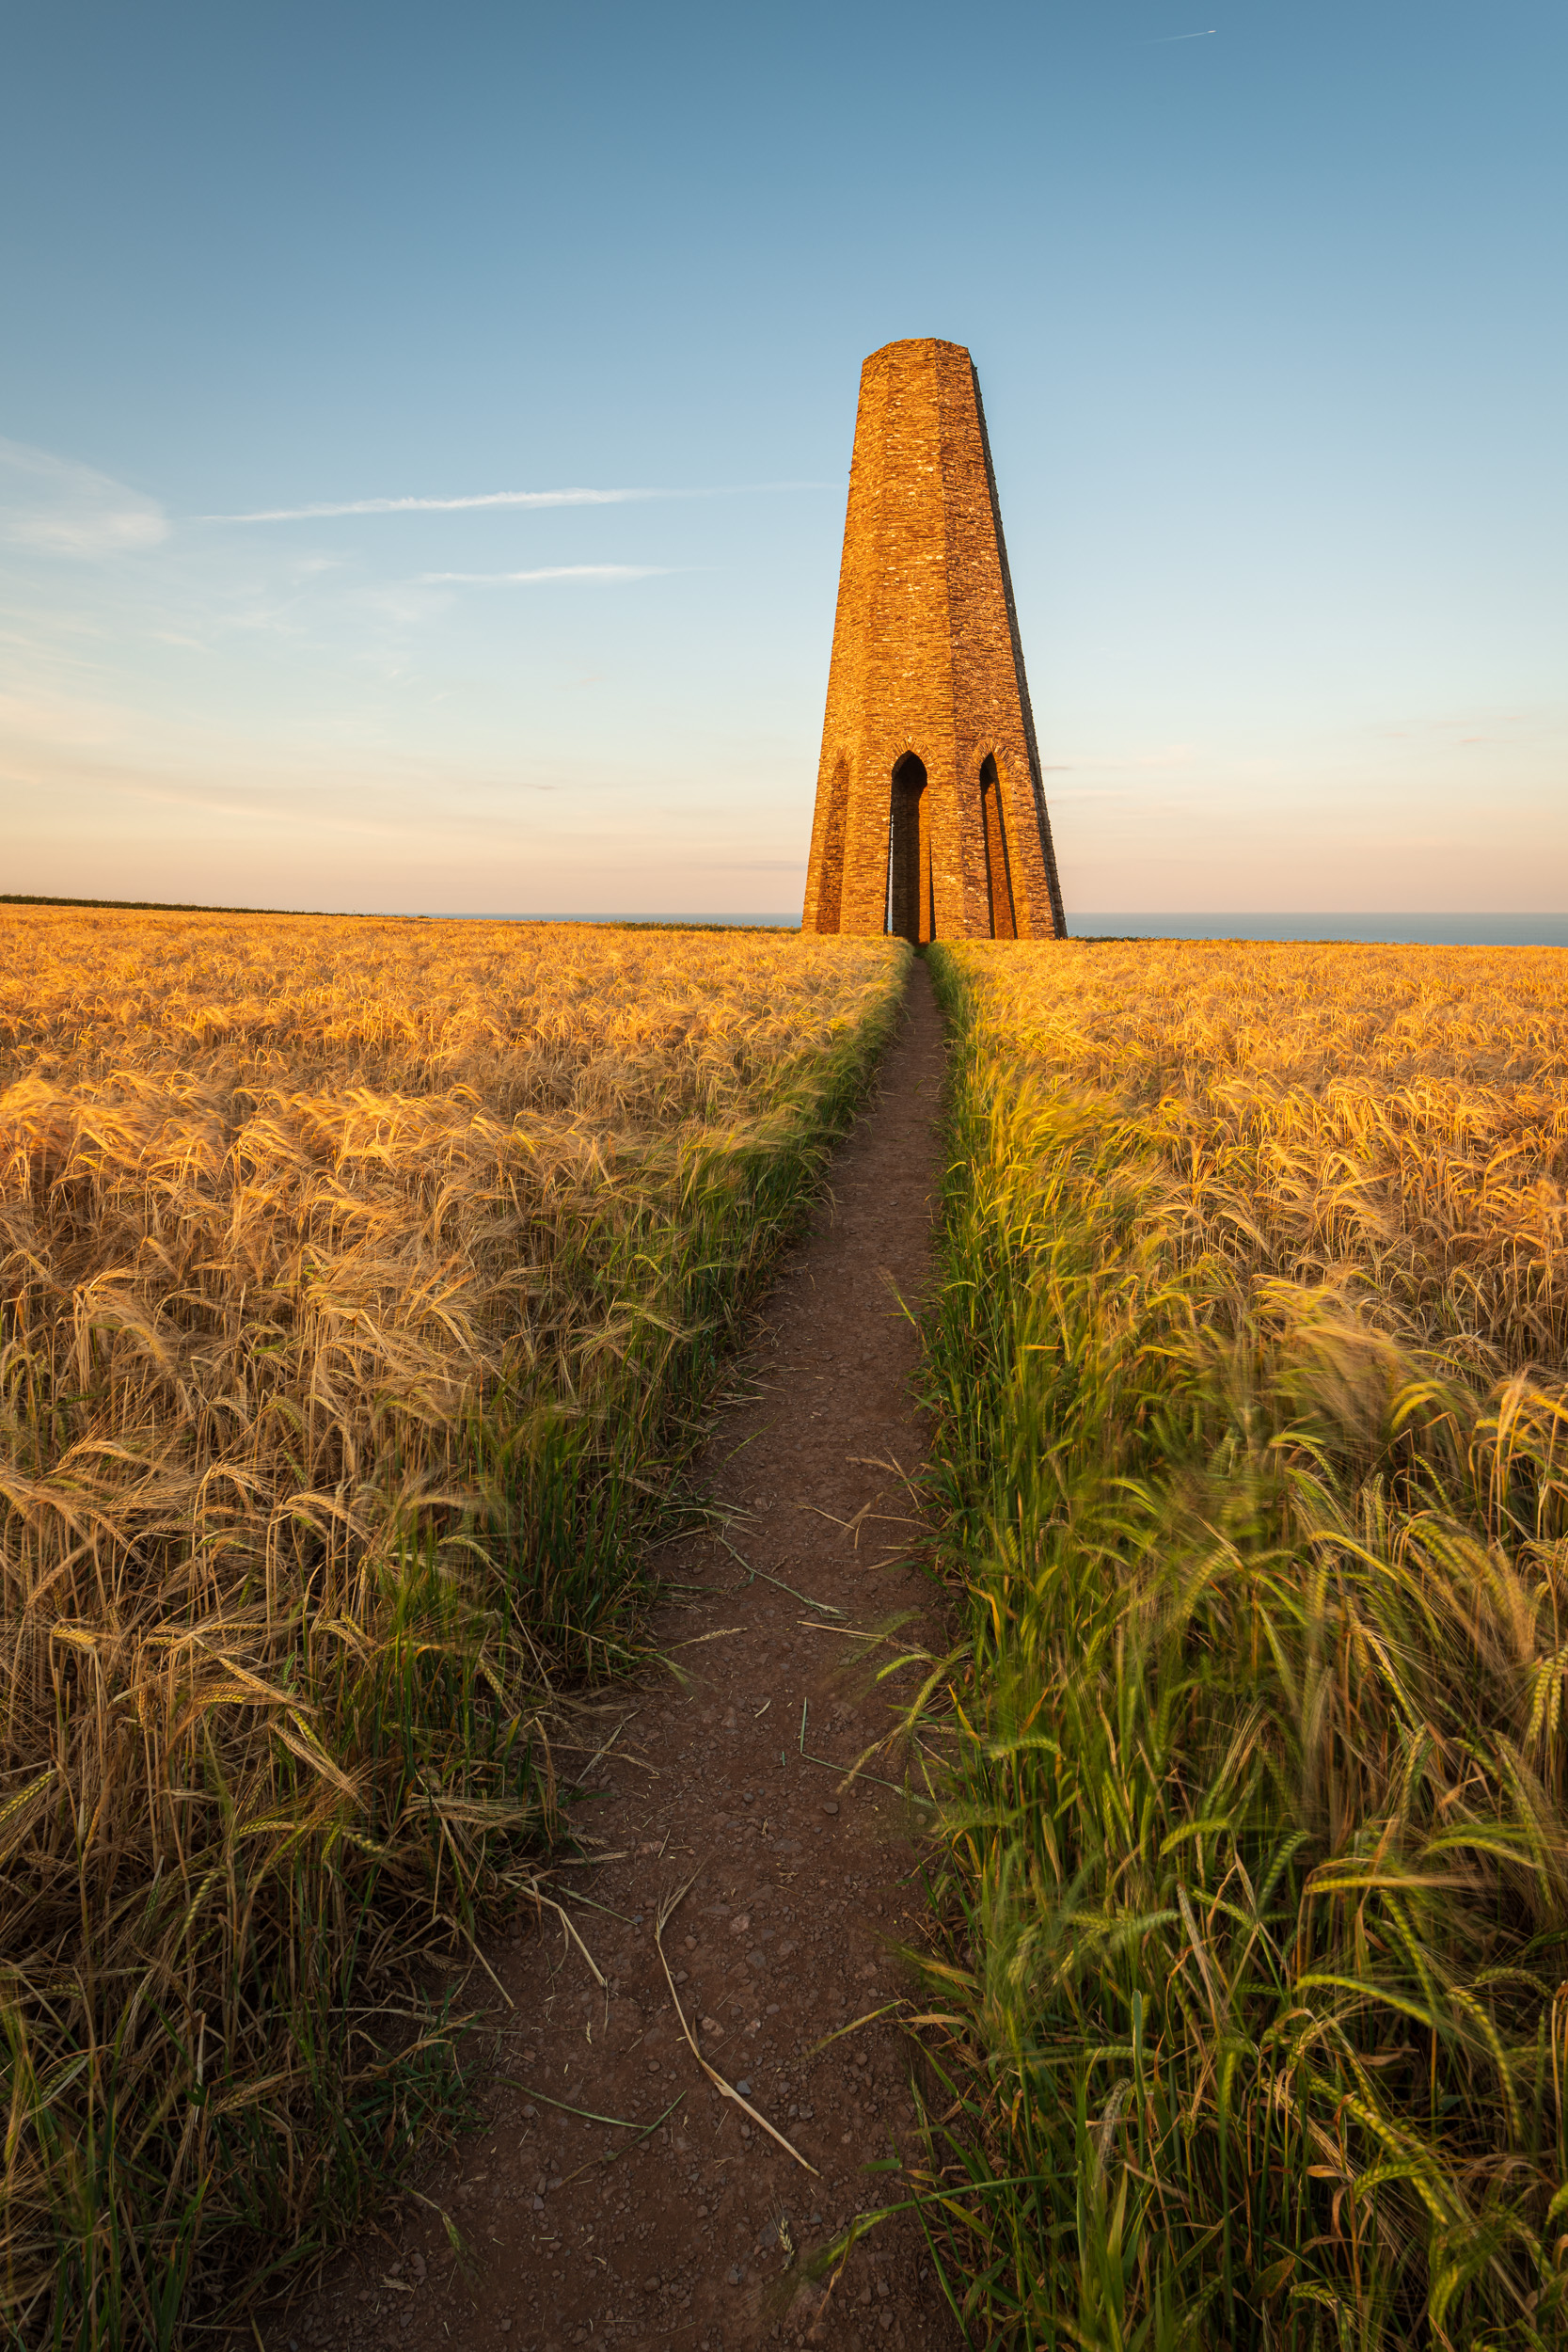 Field of Gold, Daymark Tower, Devon  - Nikon D850, Nikkor 16-35mm f/4 at 17mm, f/13, 1/3rd second at ISO 64.